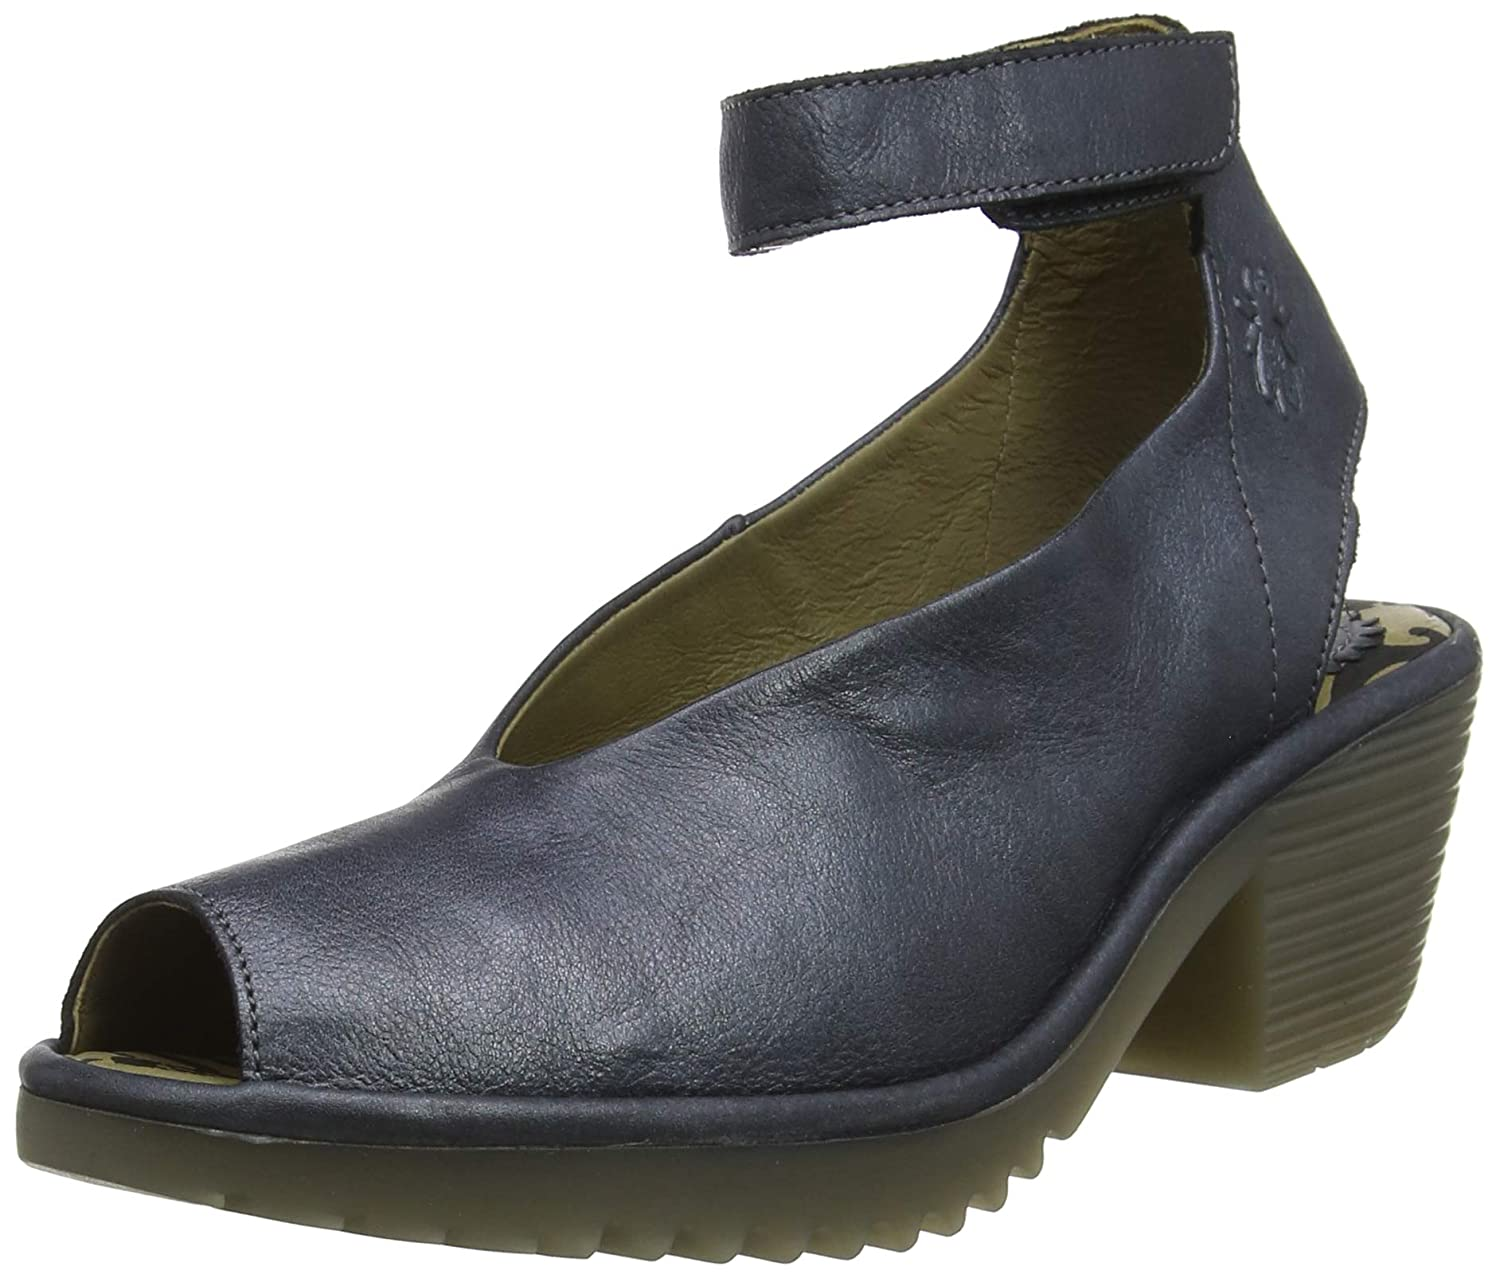 Blau (Anthracite 001) Fly London Damen Wolm019fly Riemchenpumps